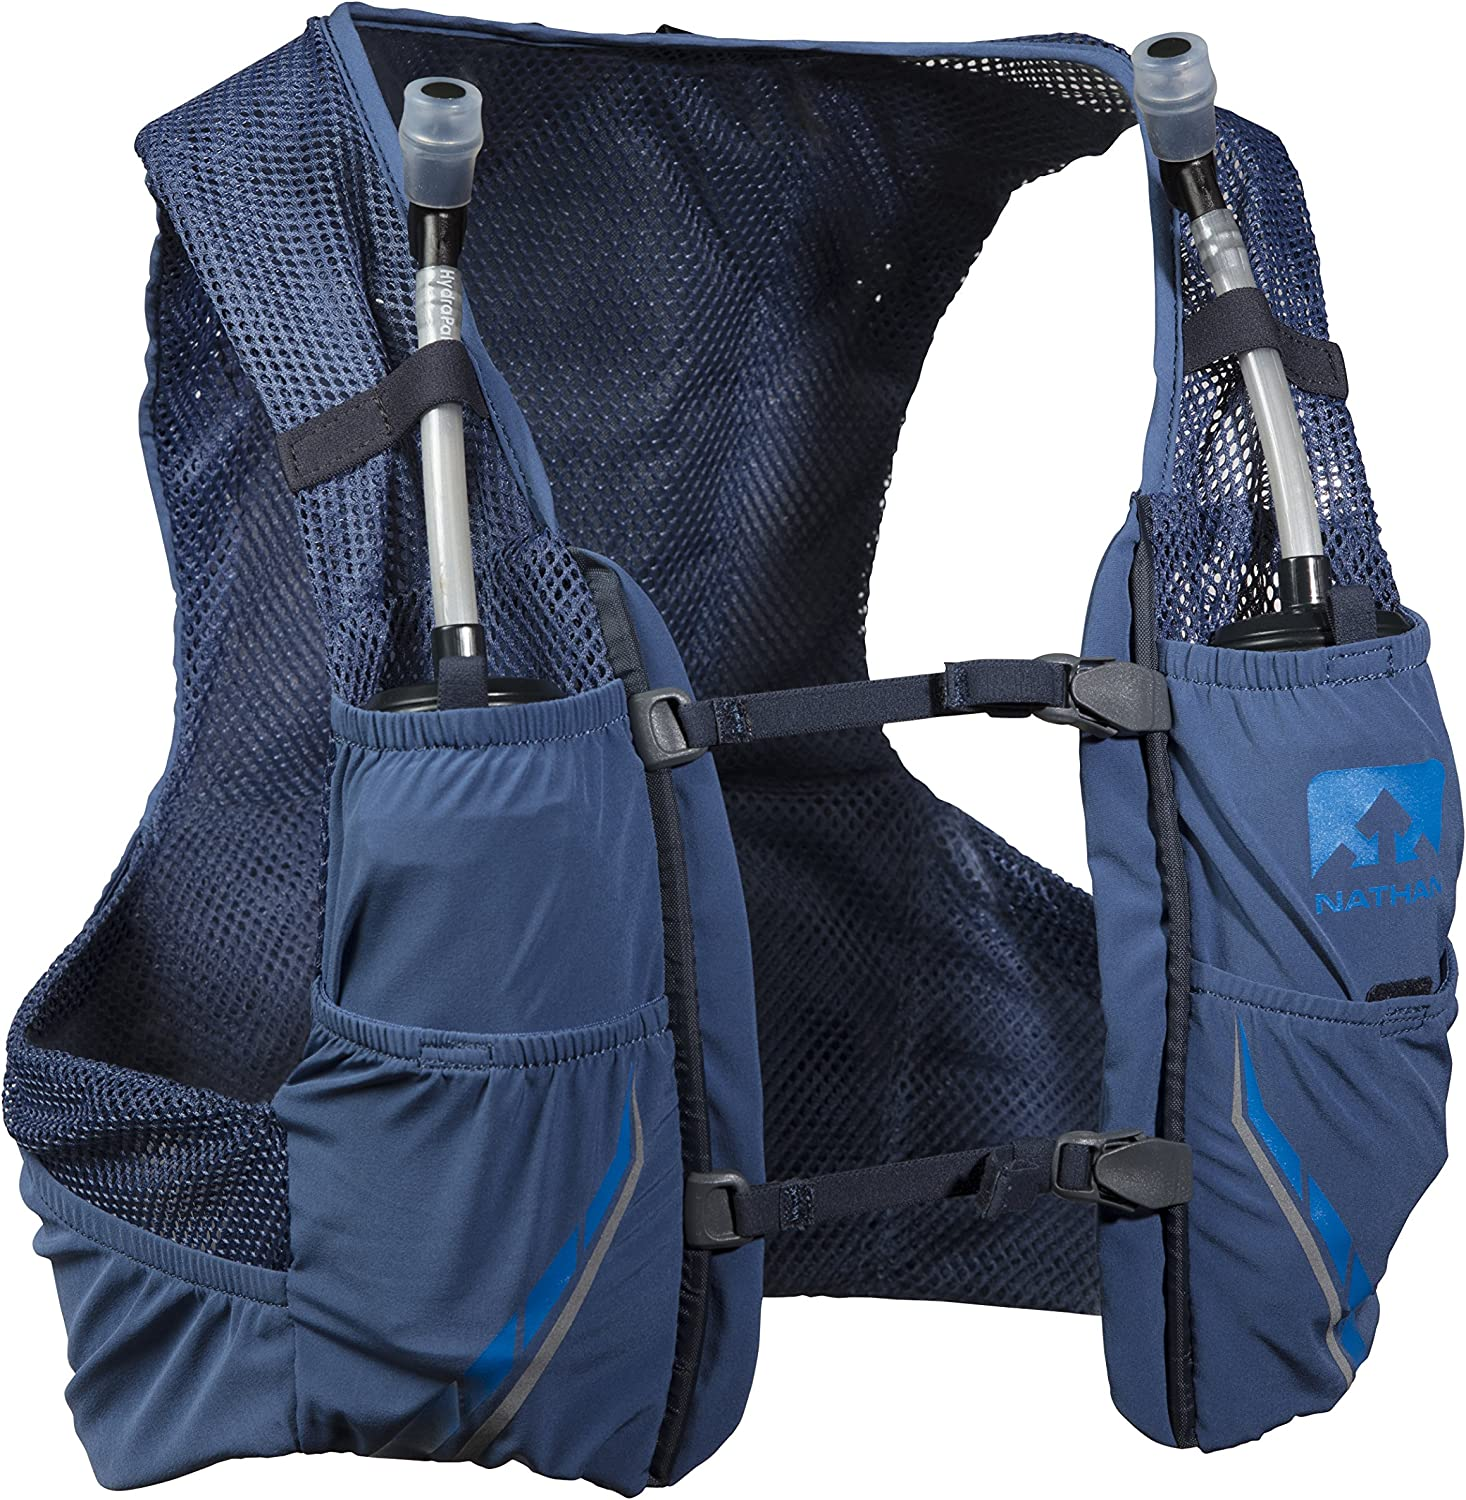 Nathan NS4544-0377-34 Male 2.5L Running Hydration Packs, True Navy Blue Nights, Large